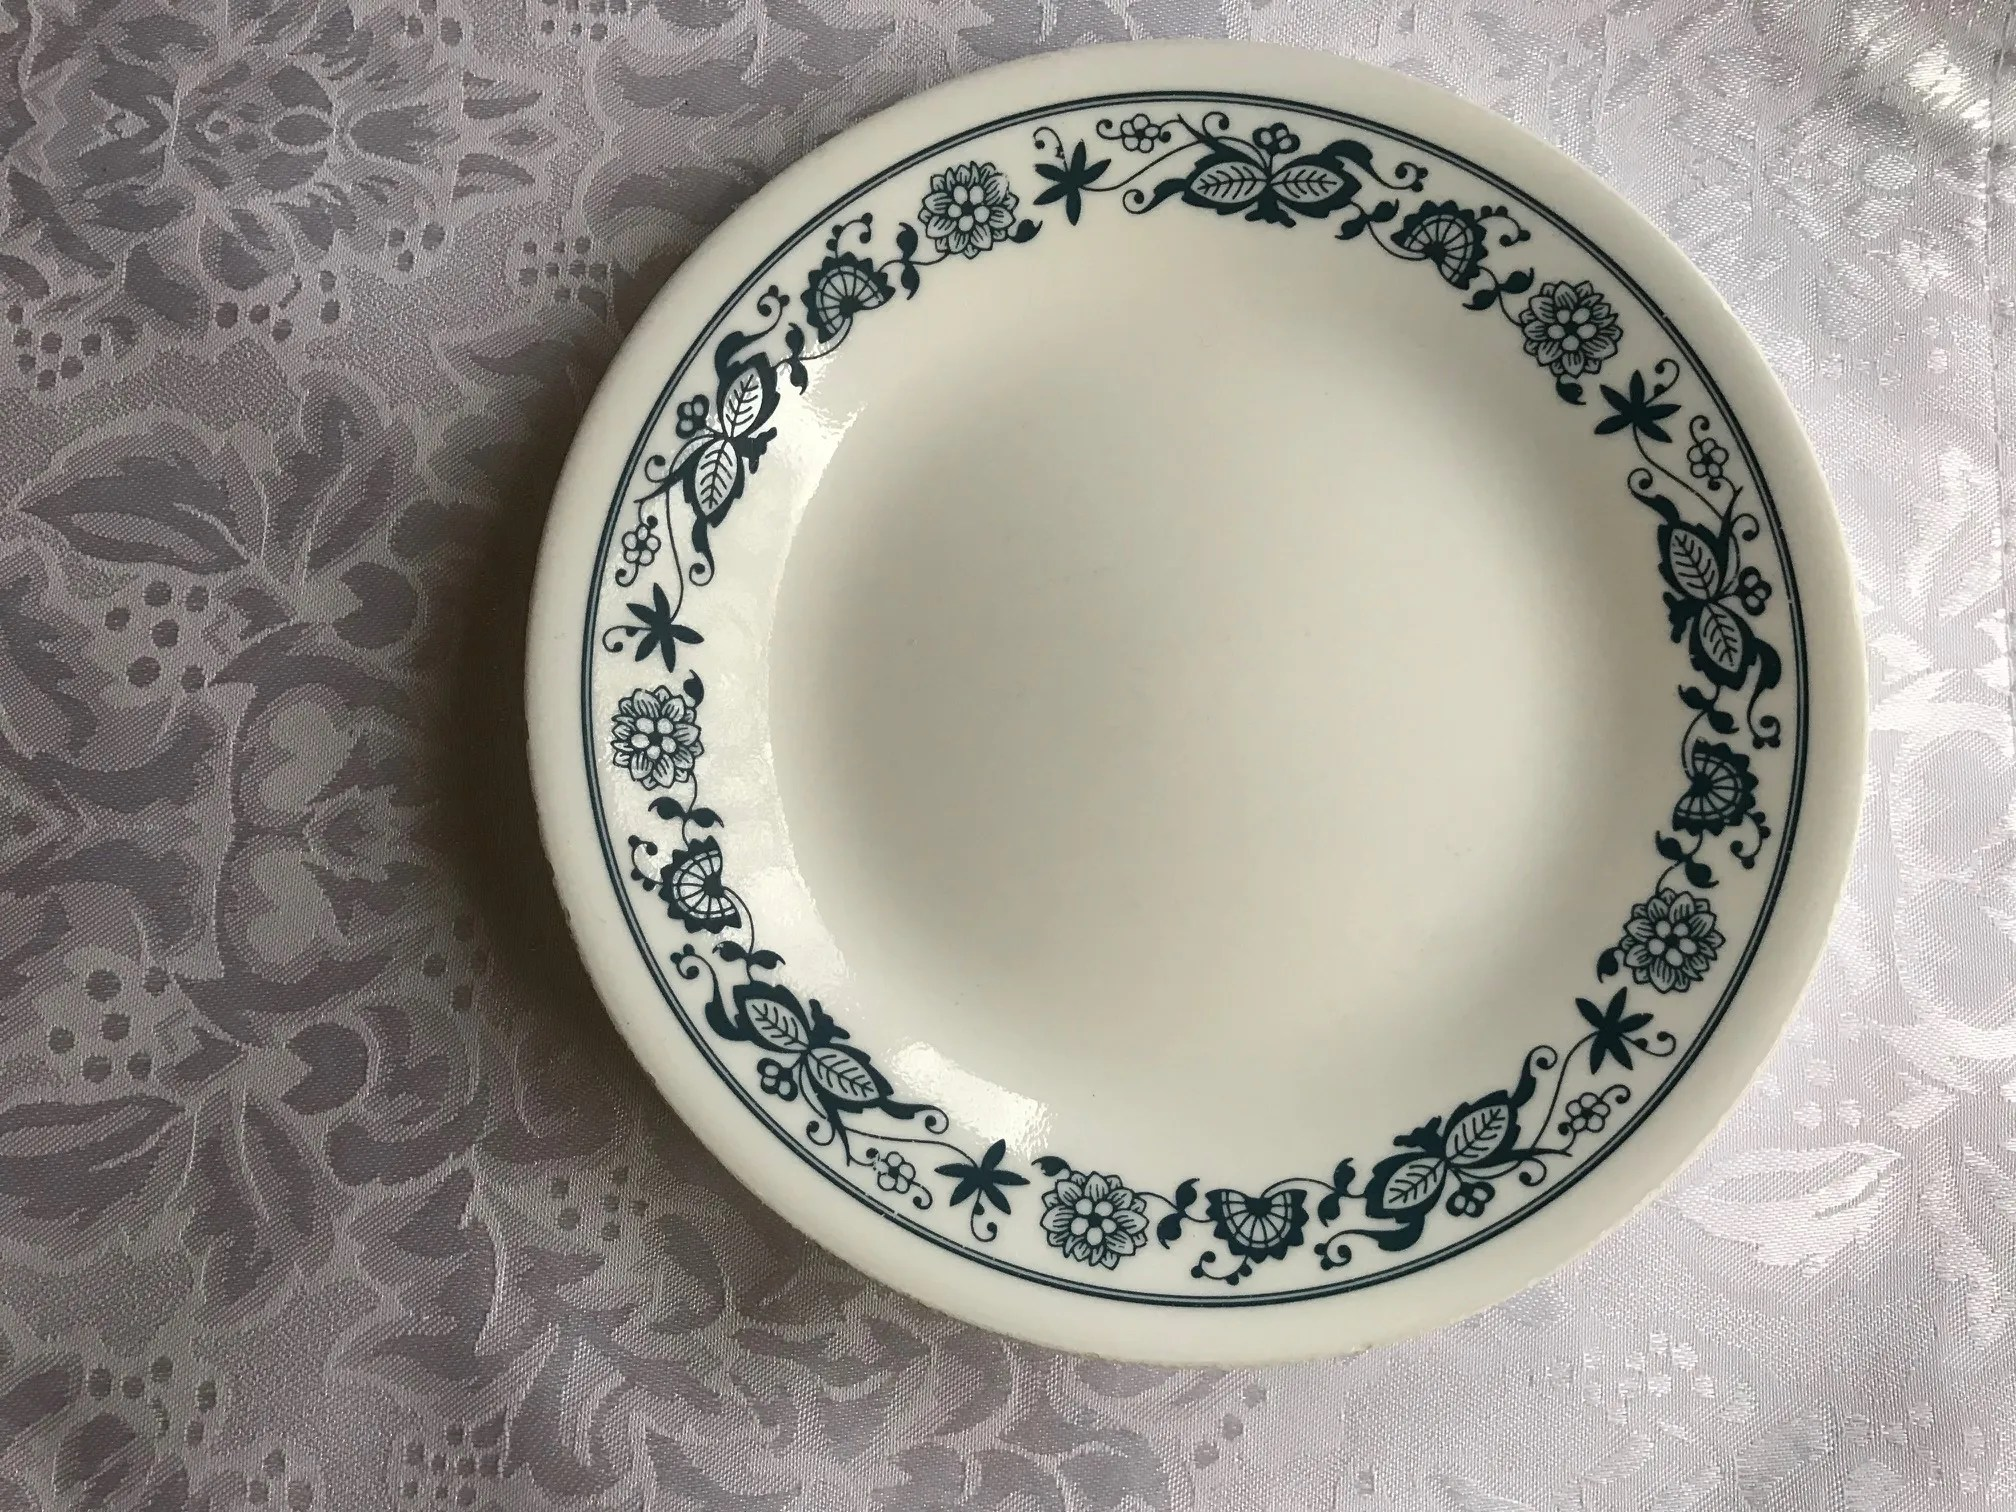 Patterns older corelle How to